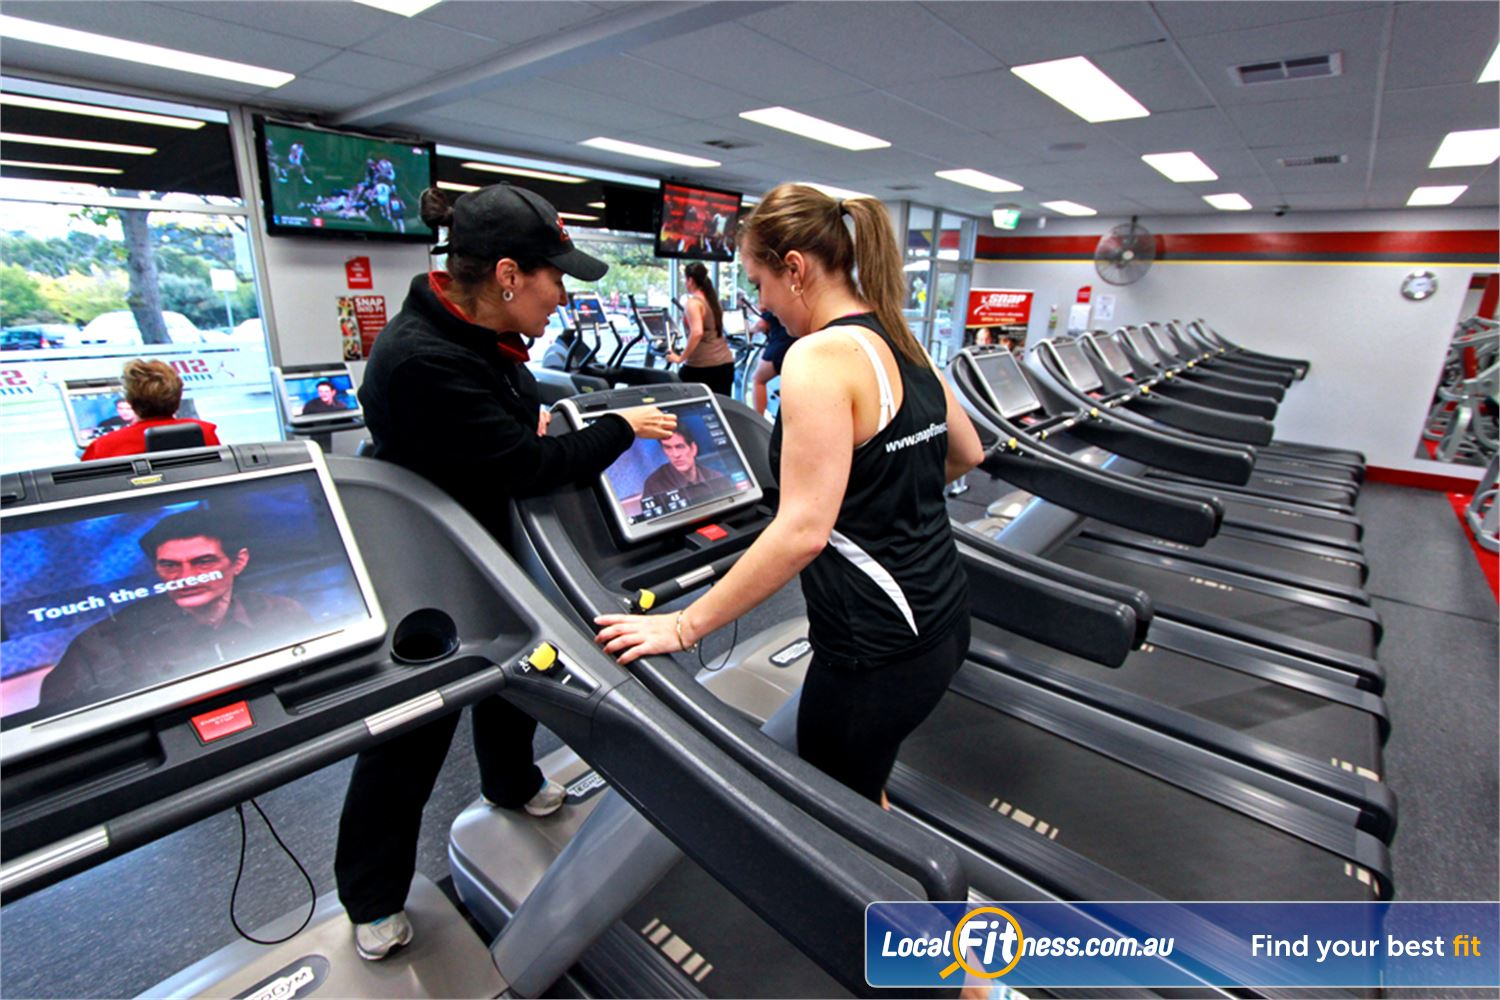 Snap Fitness Jindalee Watch your favorite shows while you train.